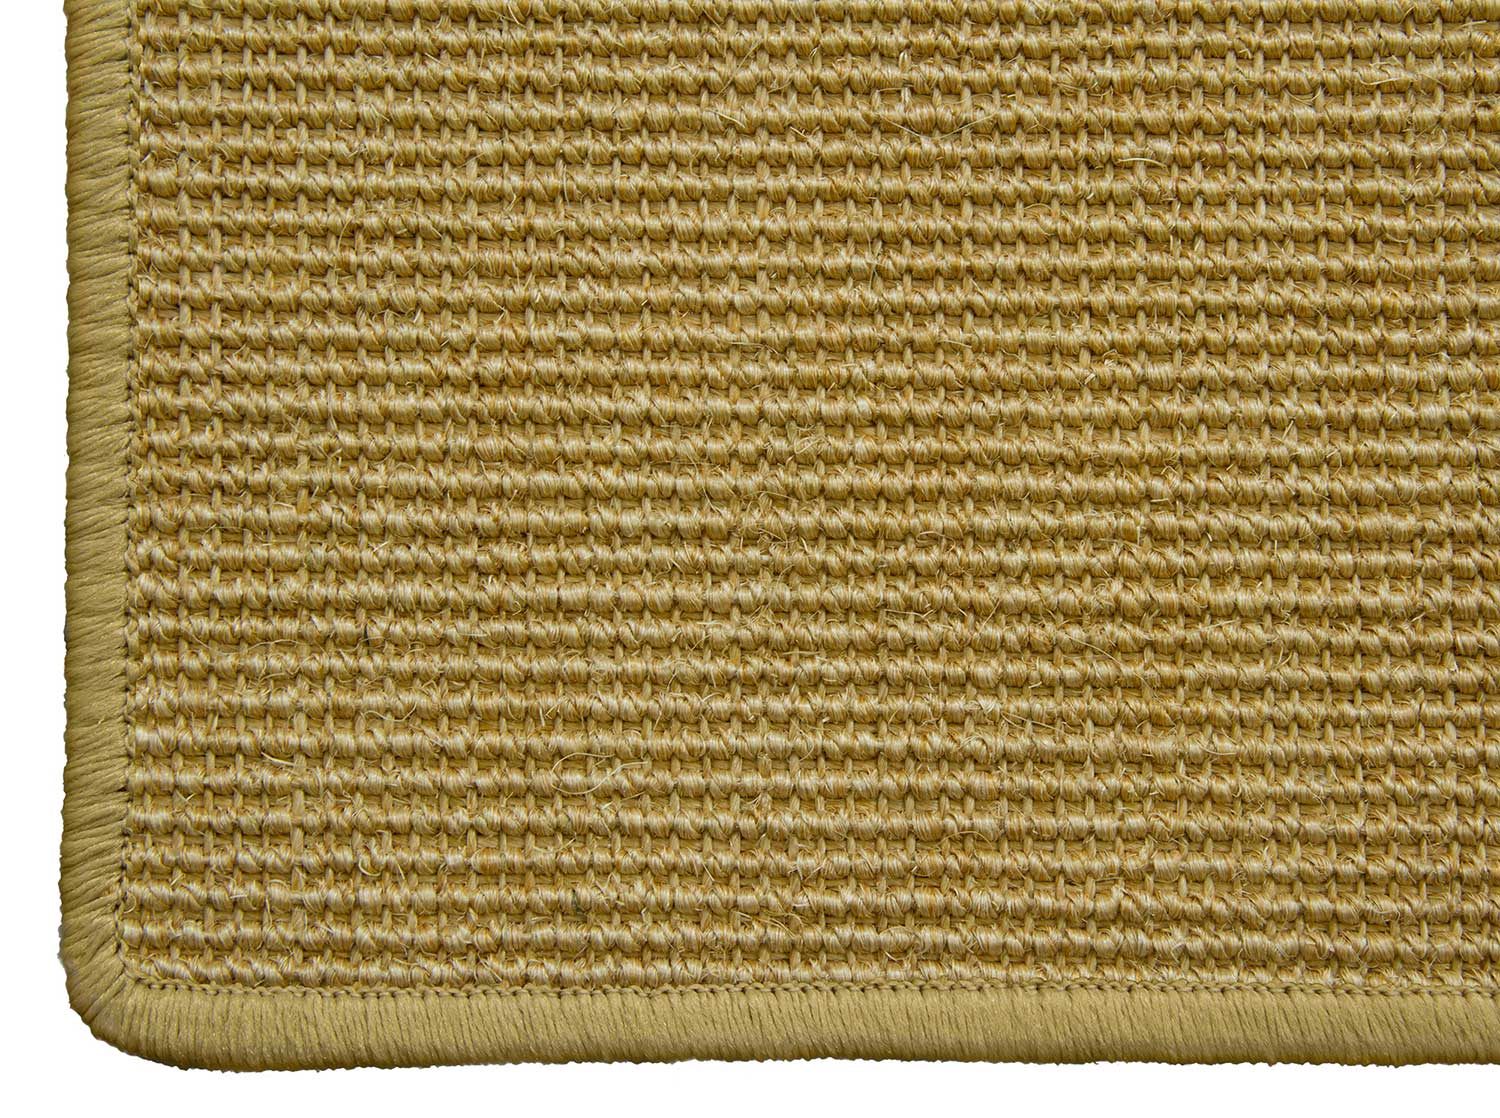 Sisal Teppich 300x300 Sisal Teppich 300x300 Perfect Miroo Sam Miroo Pia With